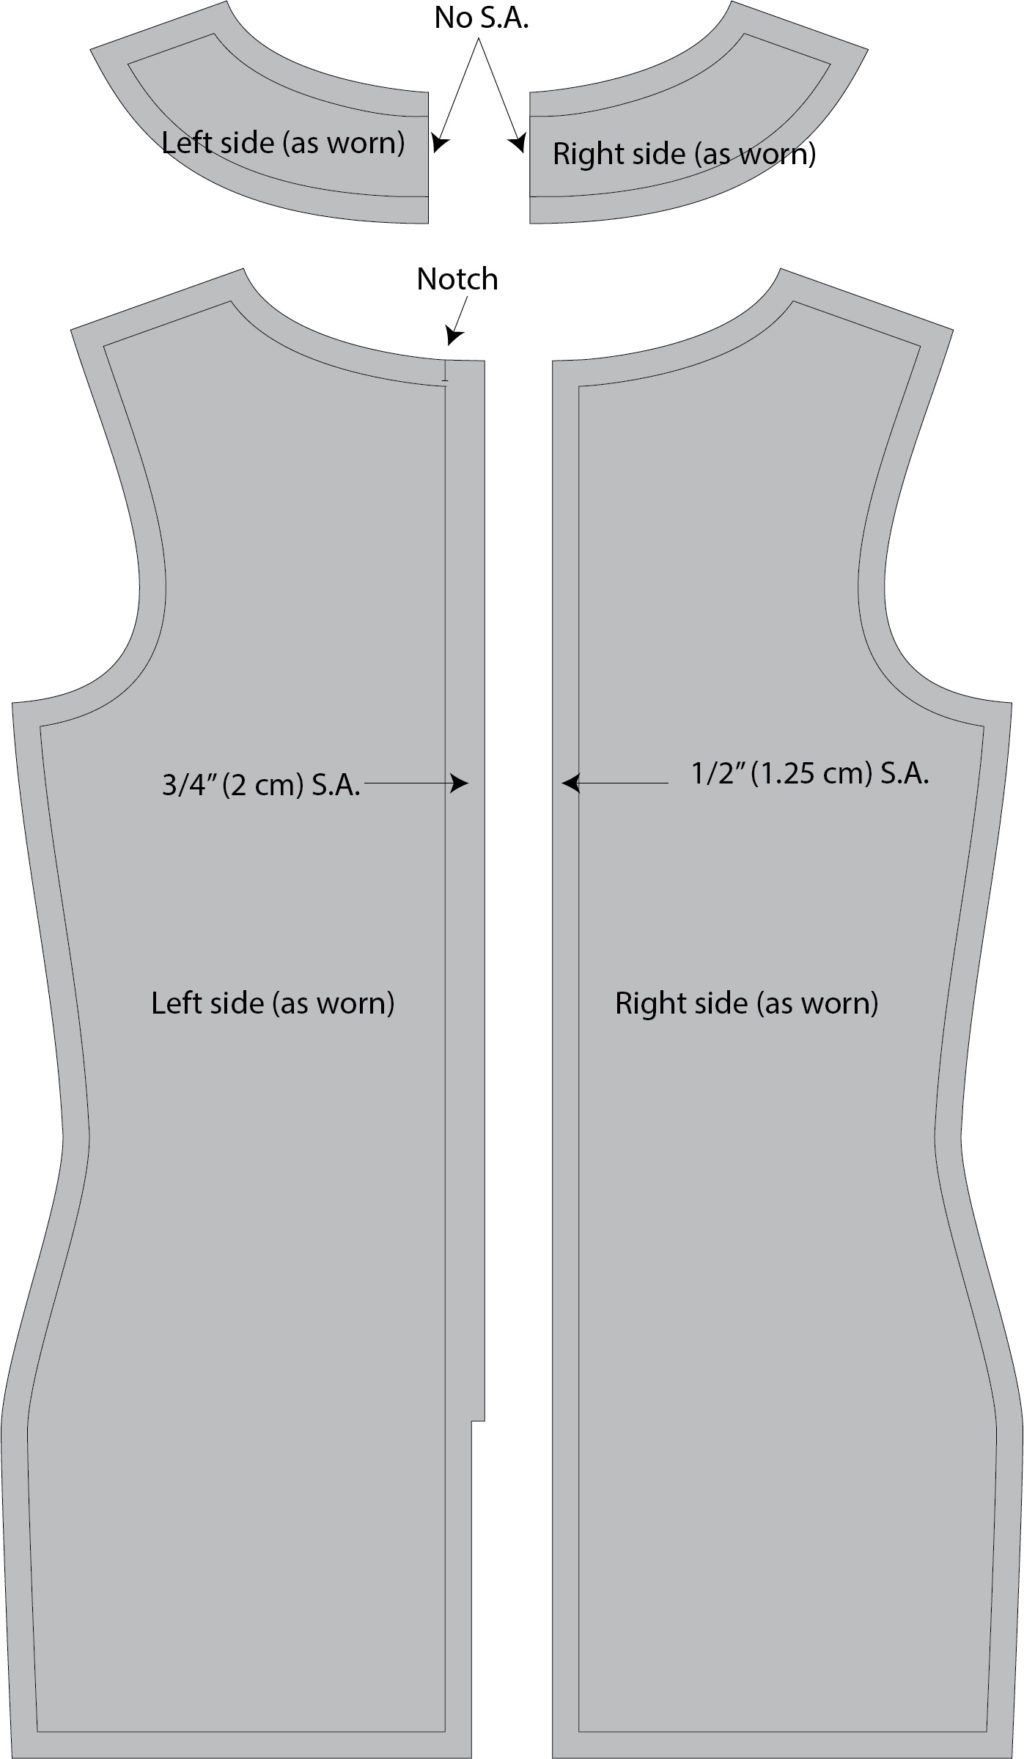 Lapped Zipper with Facing Seam Allowances